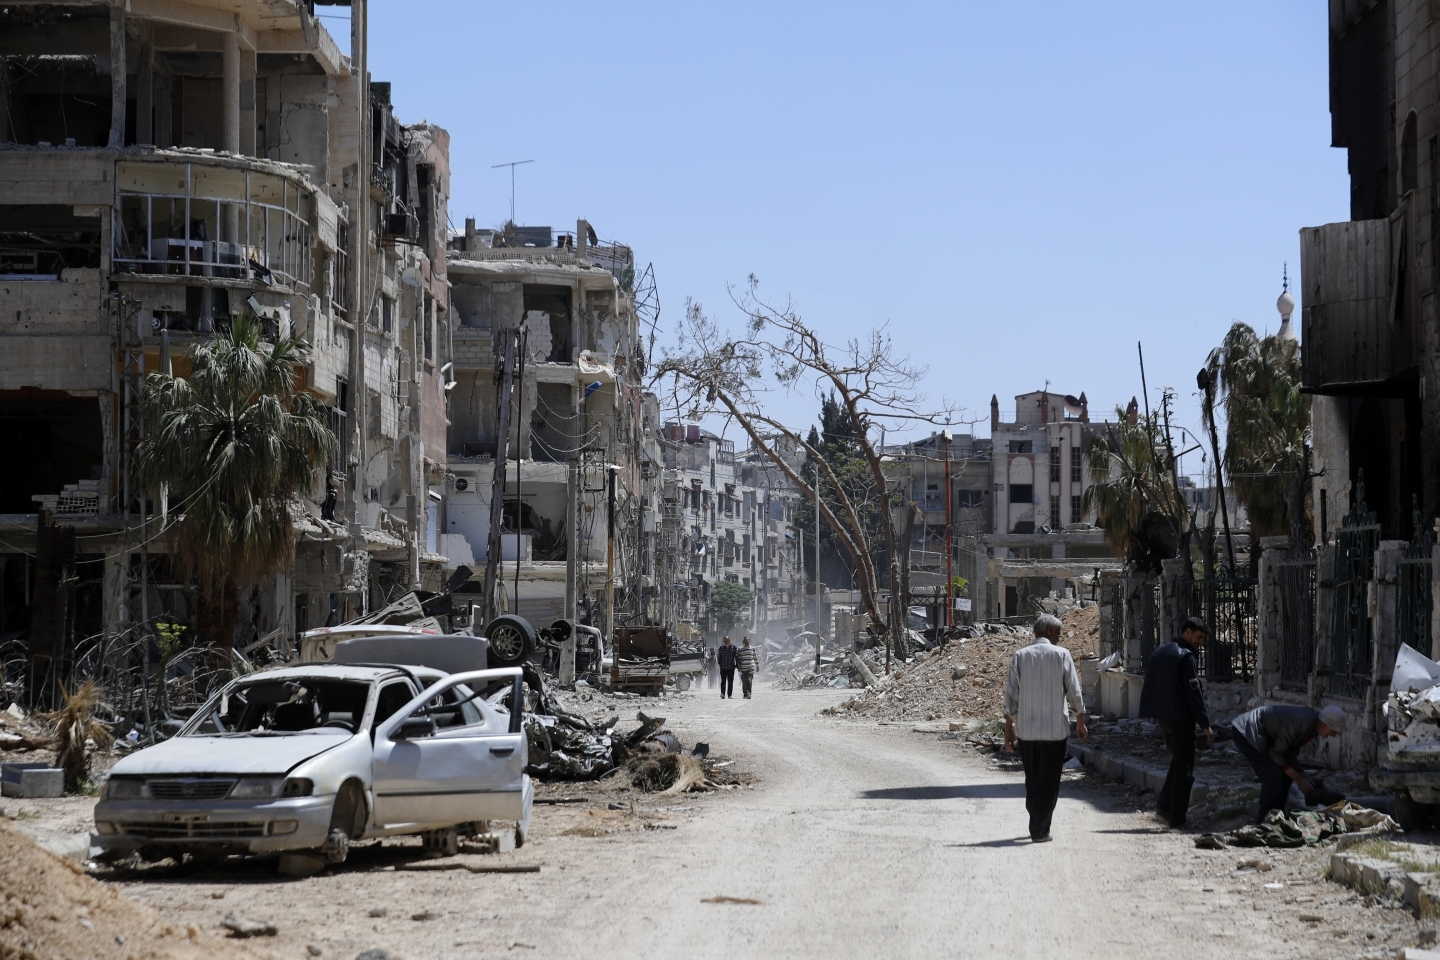 Syrians walk through destruction in the town of Douma, the site of a chemical weapons attack on Monday, April 16, 2018. (AP Photo/Hassan Ammar)